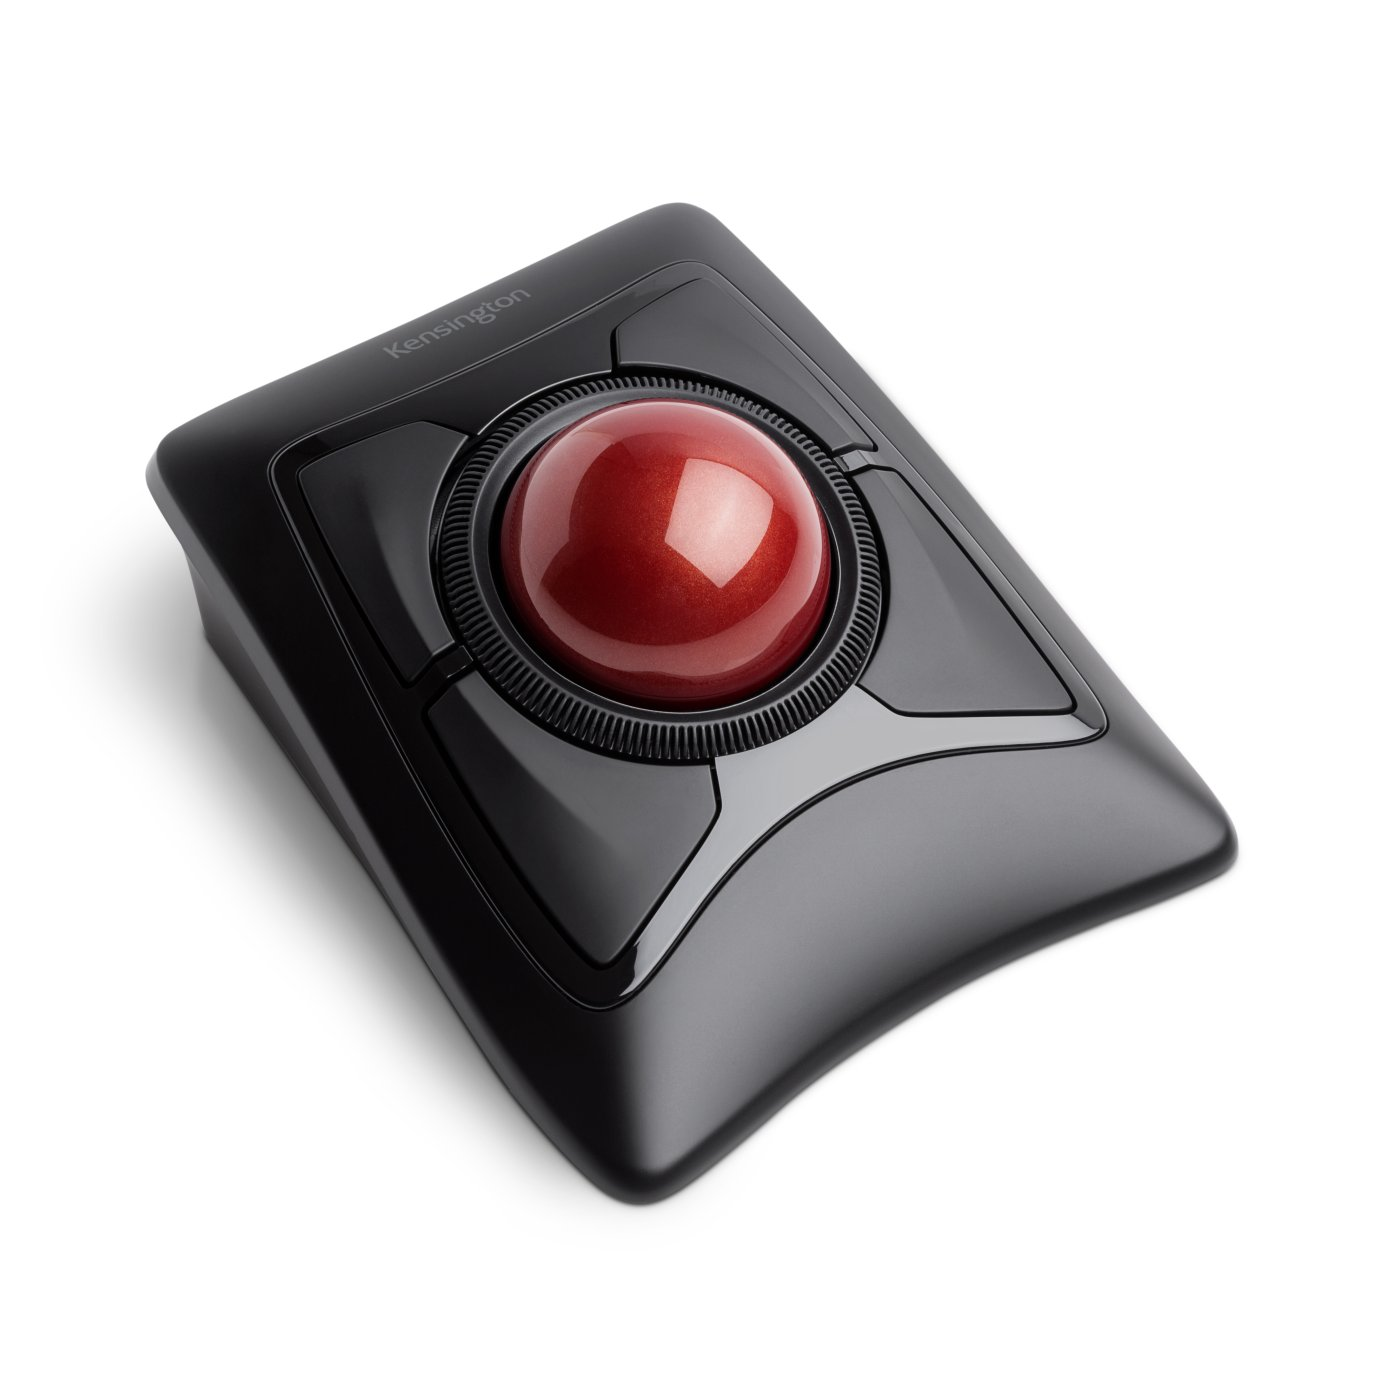 comparing the differences between the mouse and a trackball (therefore the only difference between this and a mouse is using the thumb, rather than hand the stressfulness of using a mouse, or trackball.